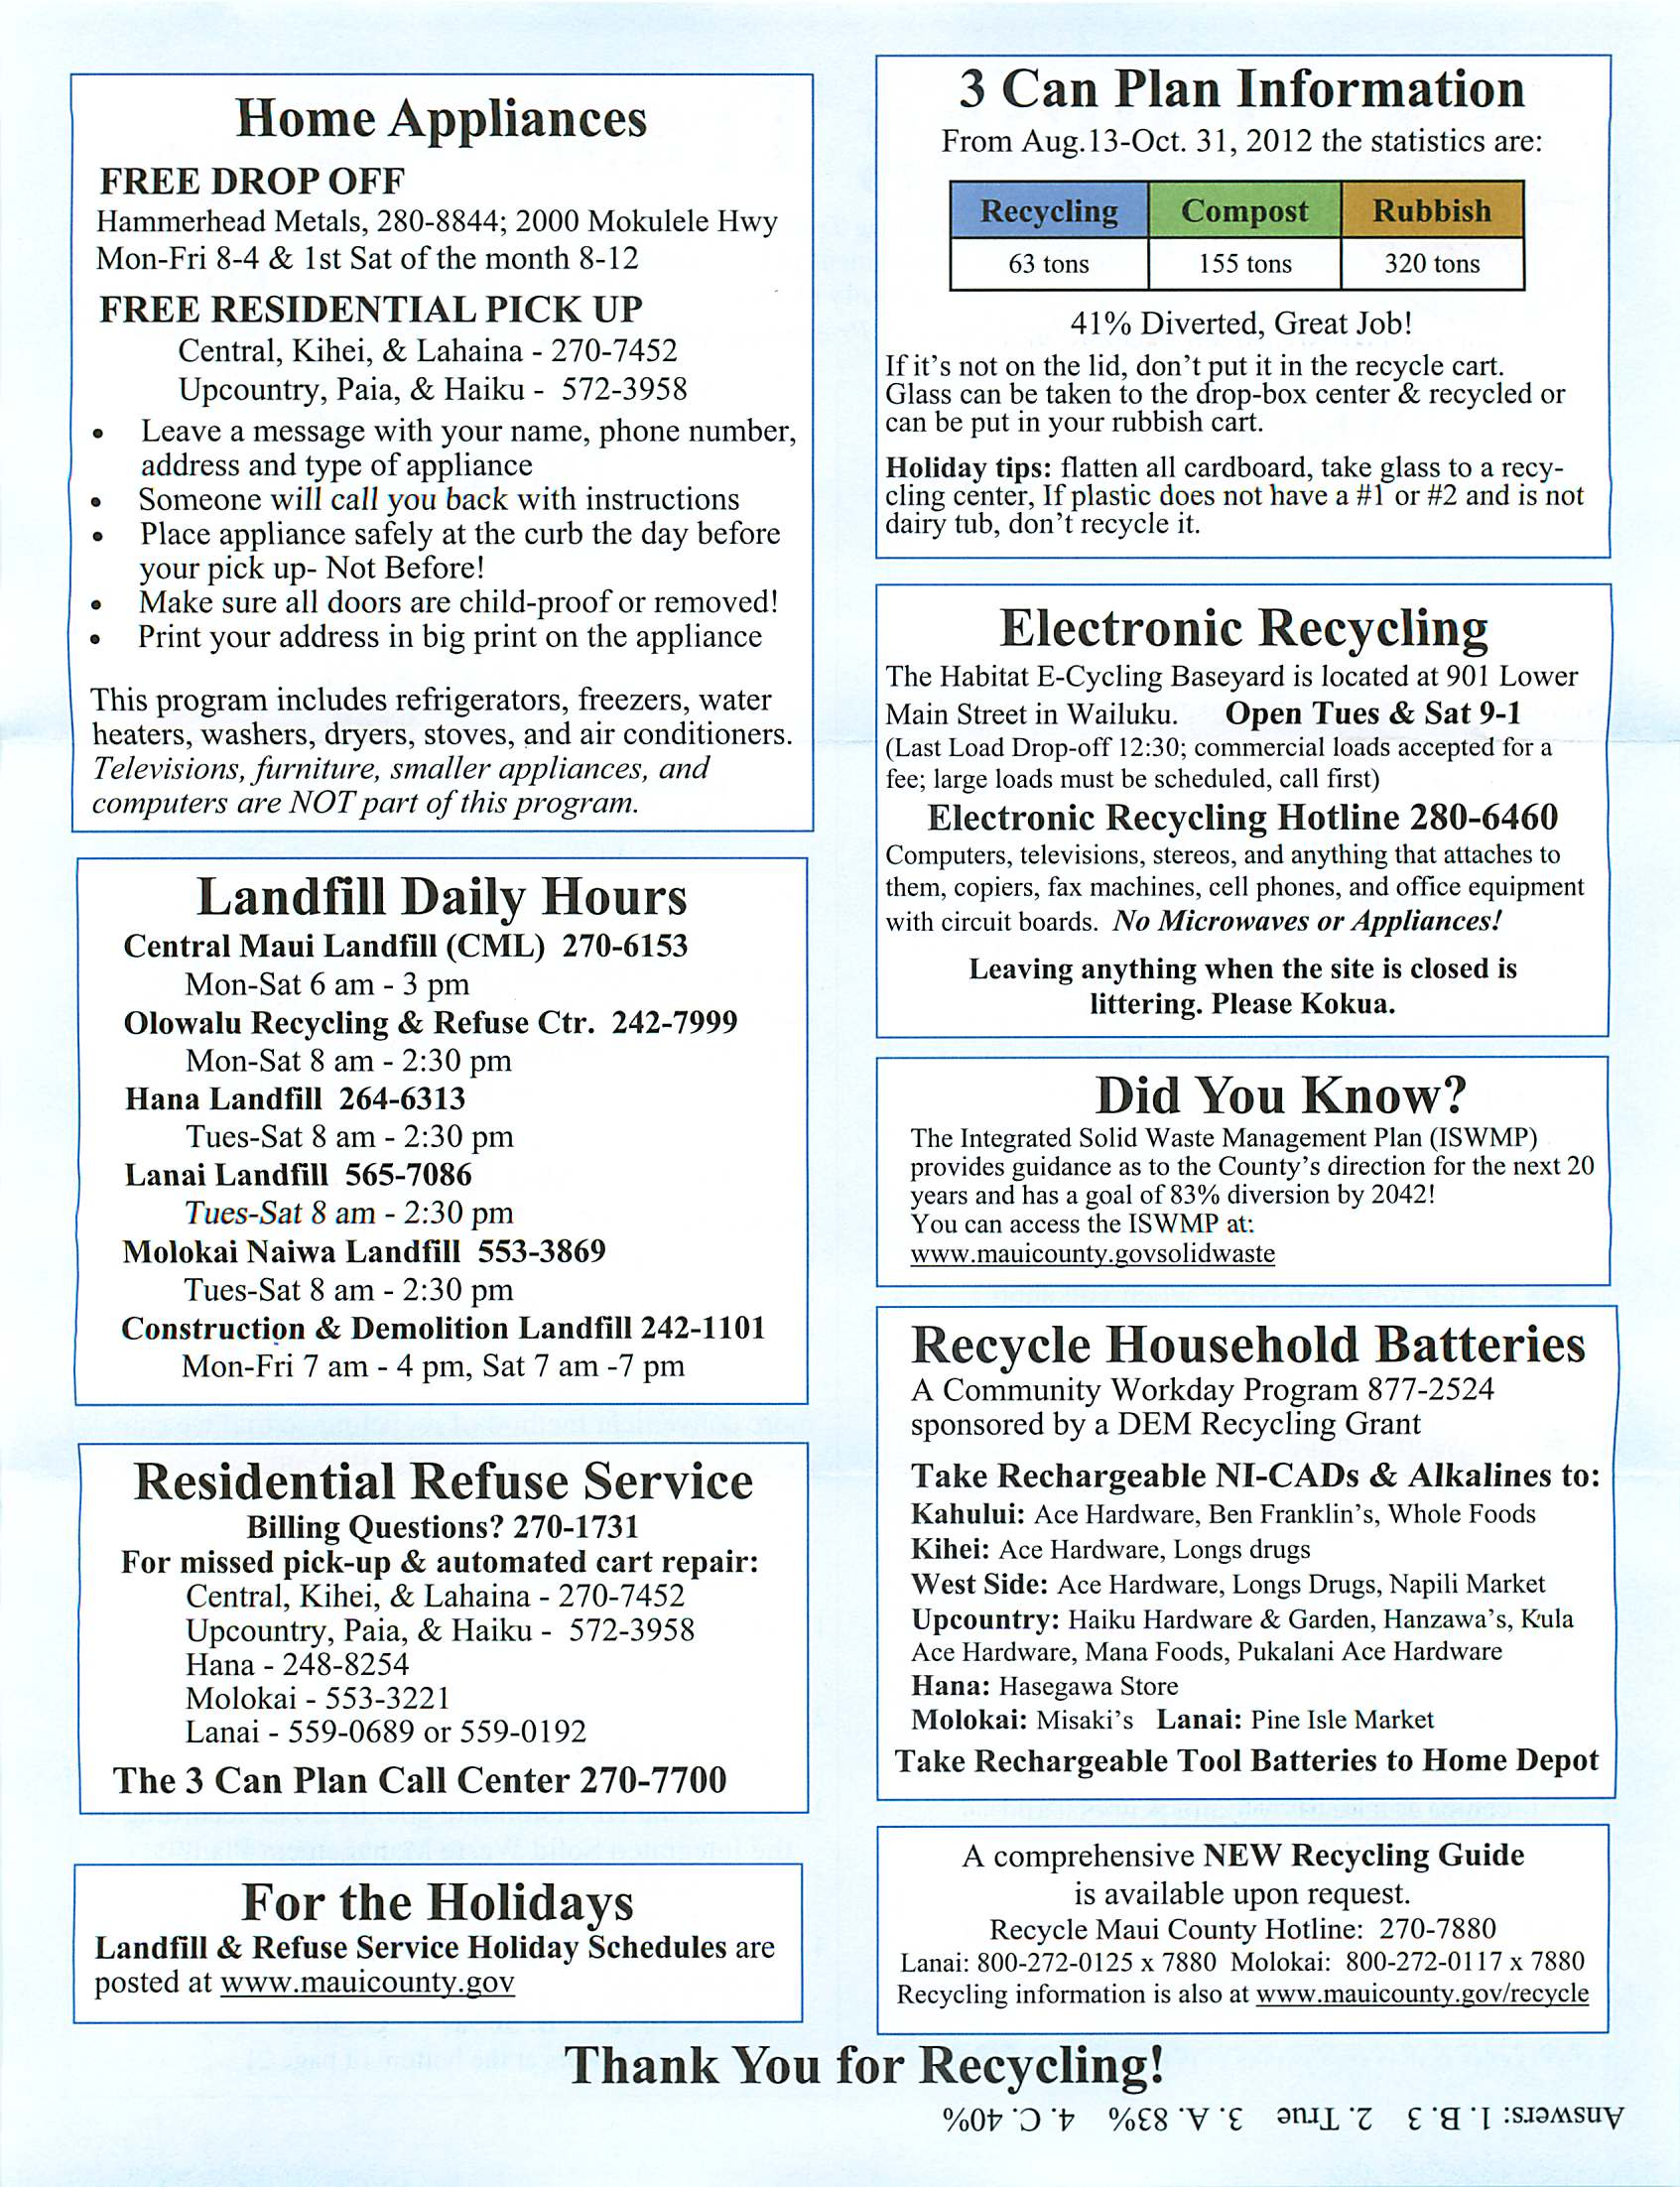 maui recyling information